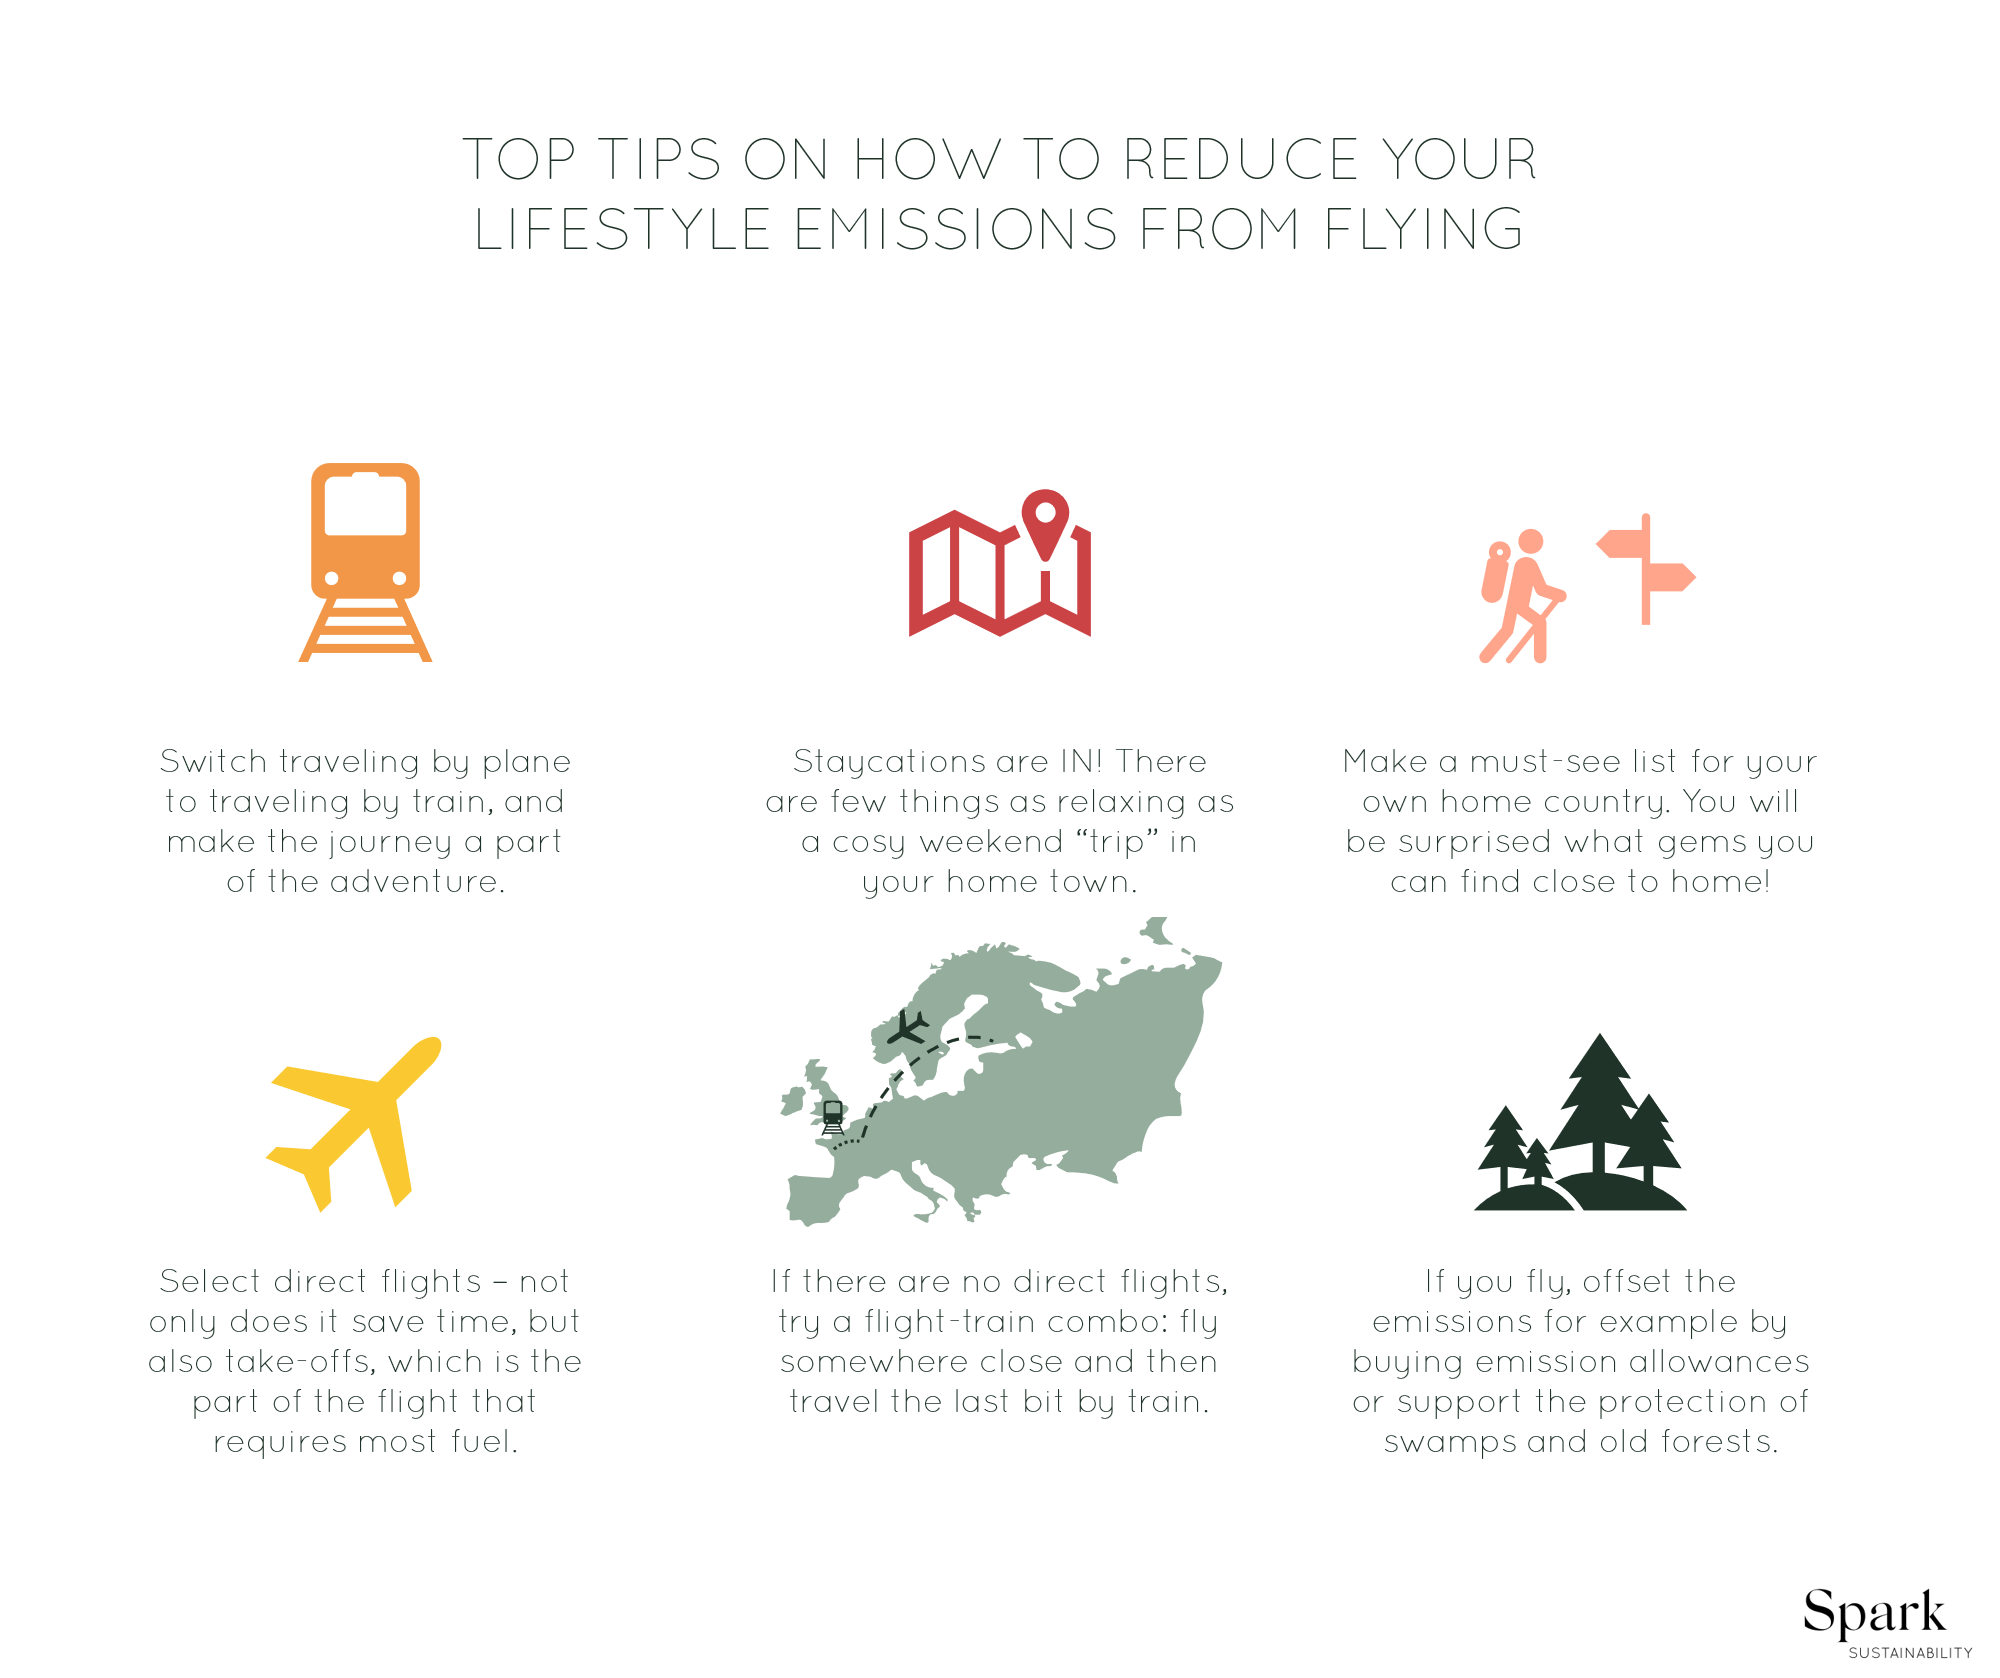 6 tips on how to reduce your lifestyle emissions from flying